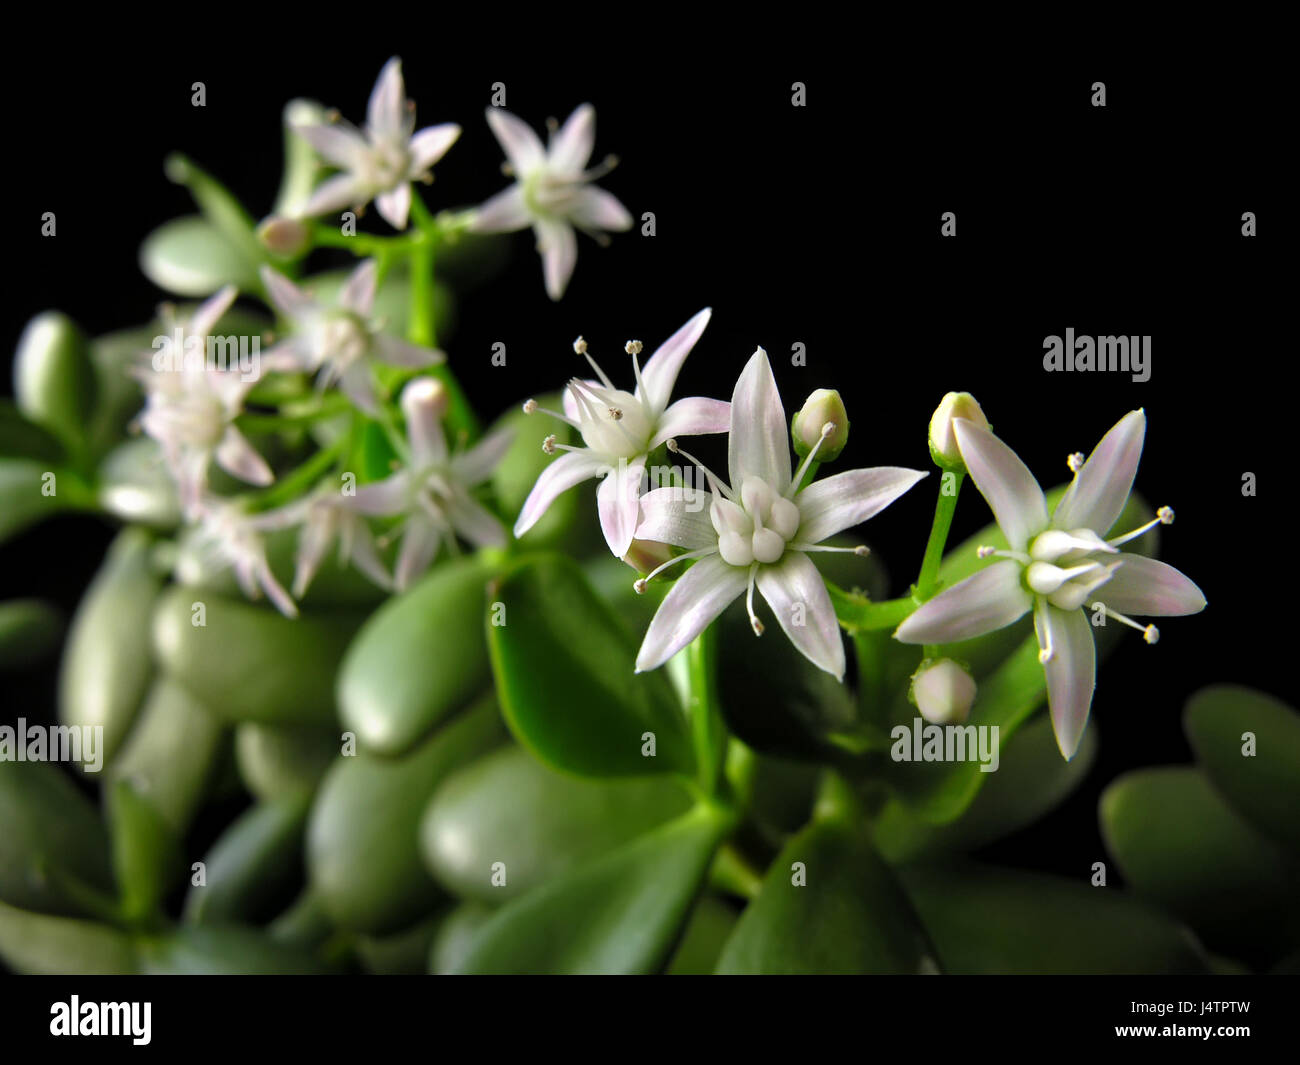 money plant crassula ovata flower photos money plant crassula ovata flower images alamy. Black Bedroom Furniture Sets. Home Design Ideas